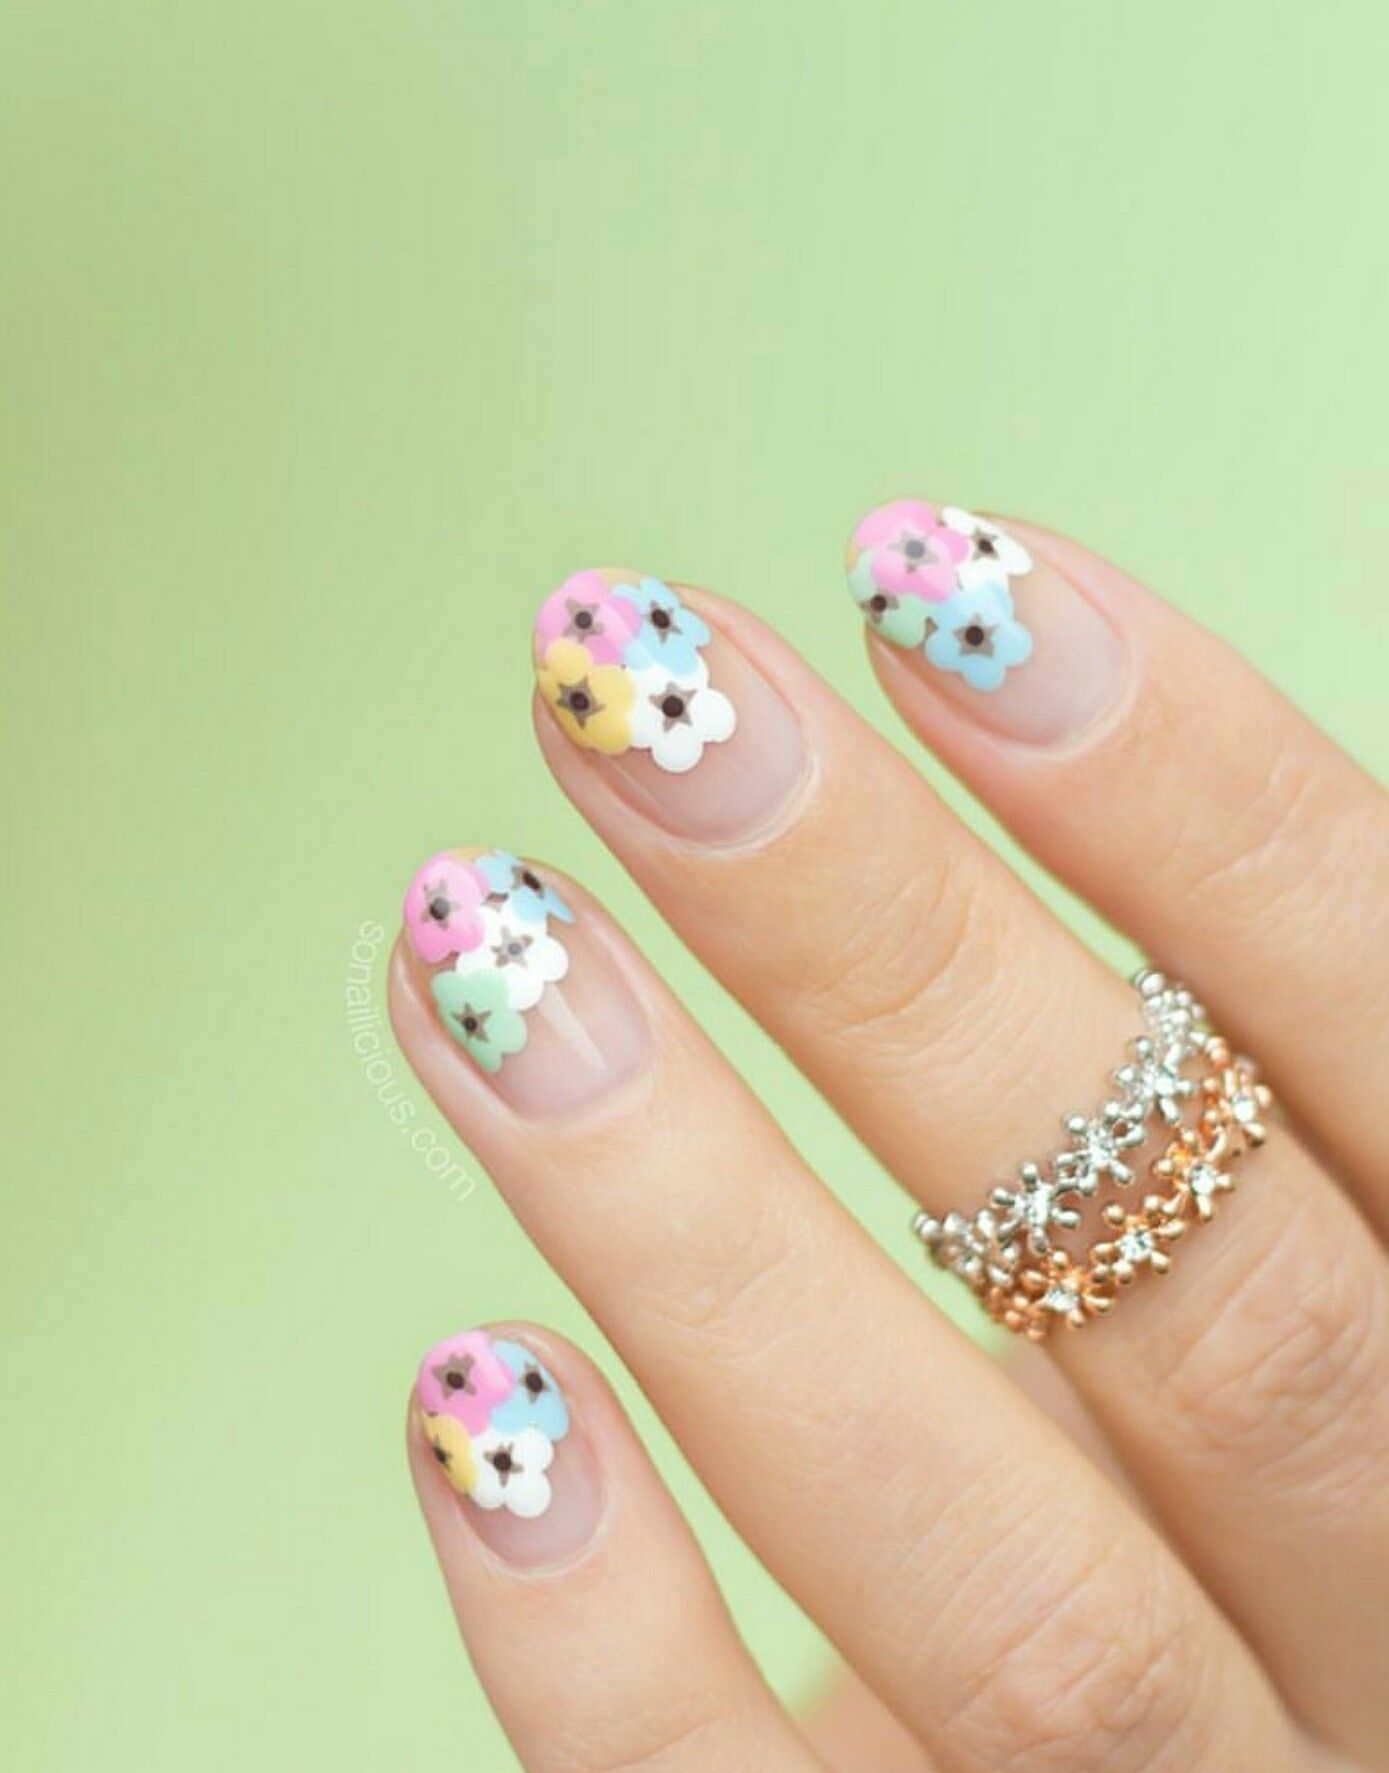 Pin de Gina Villecco en The Big Book of Nail Art | Pinterest